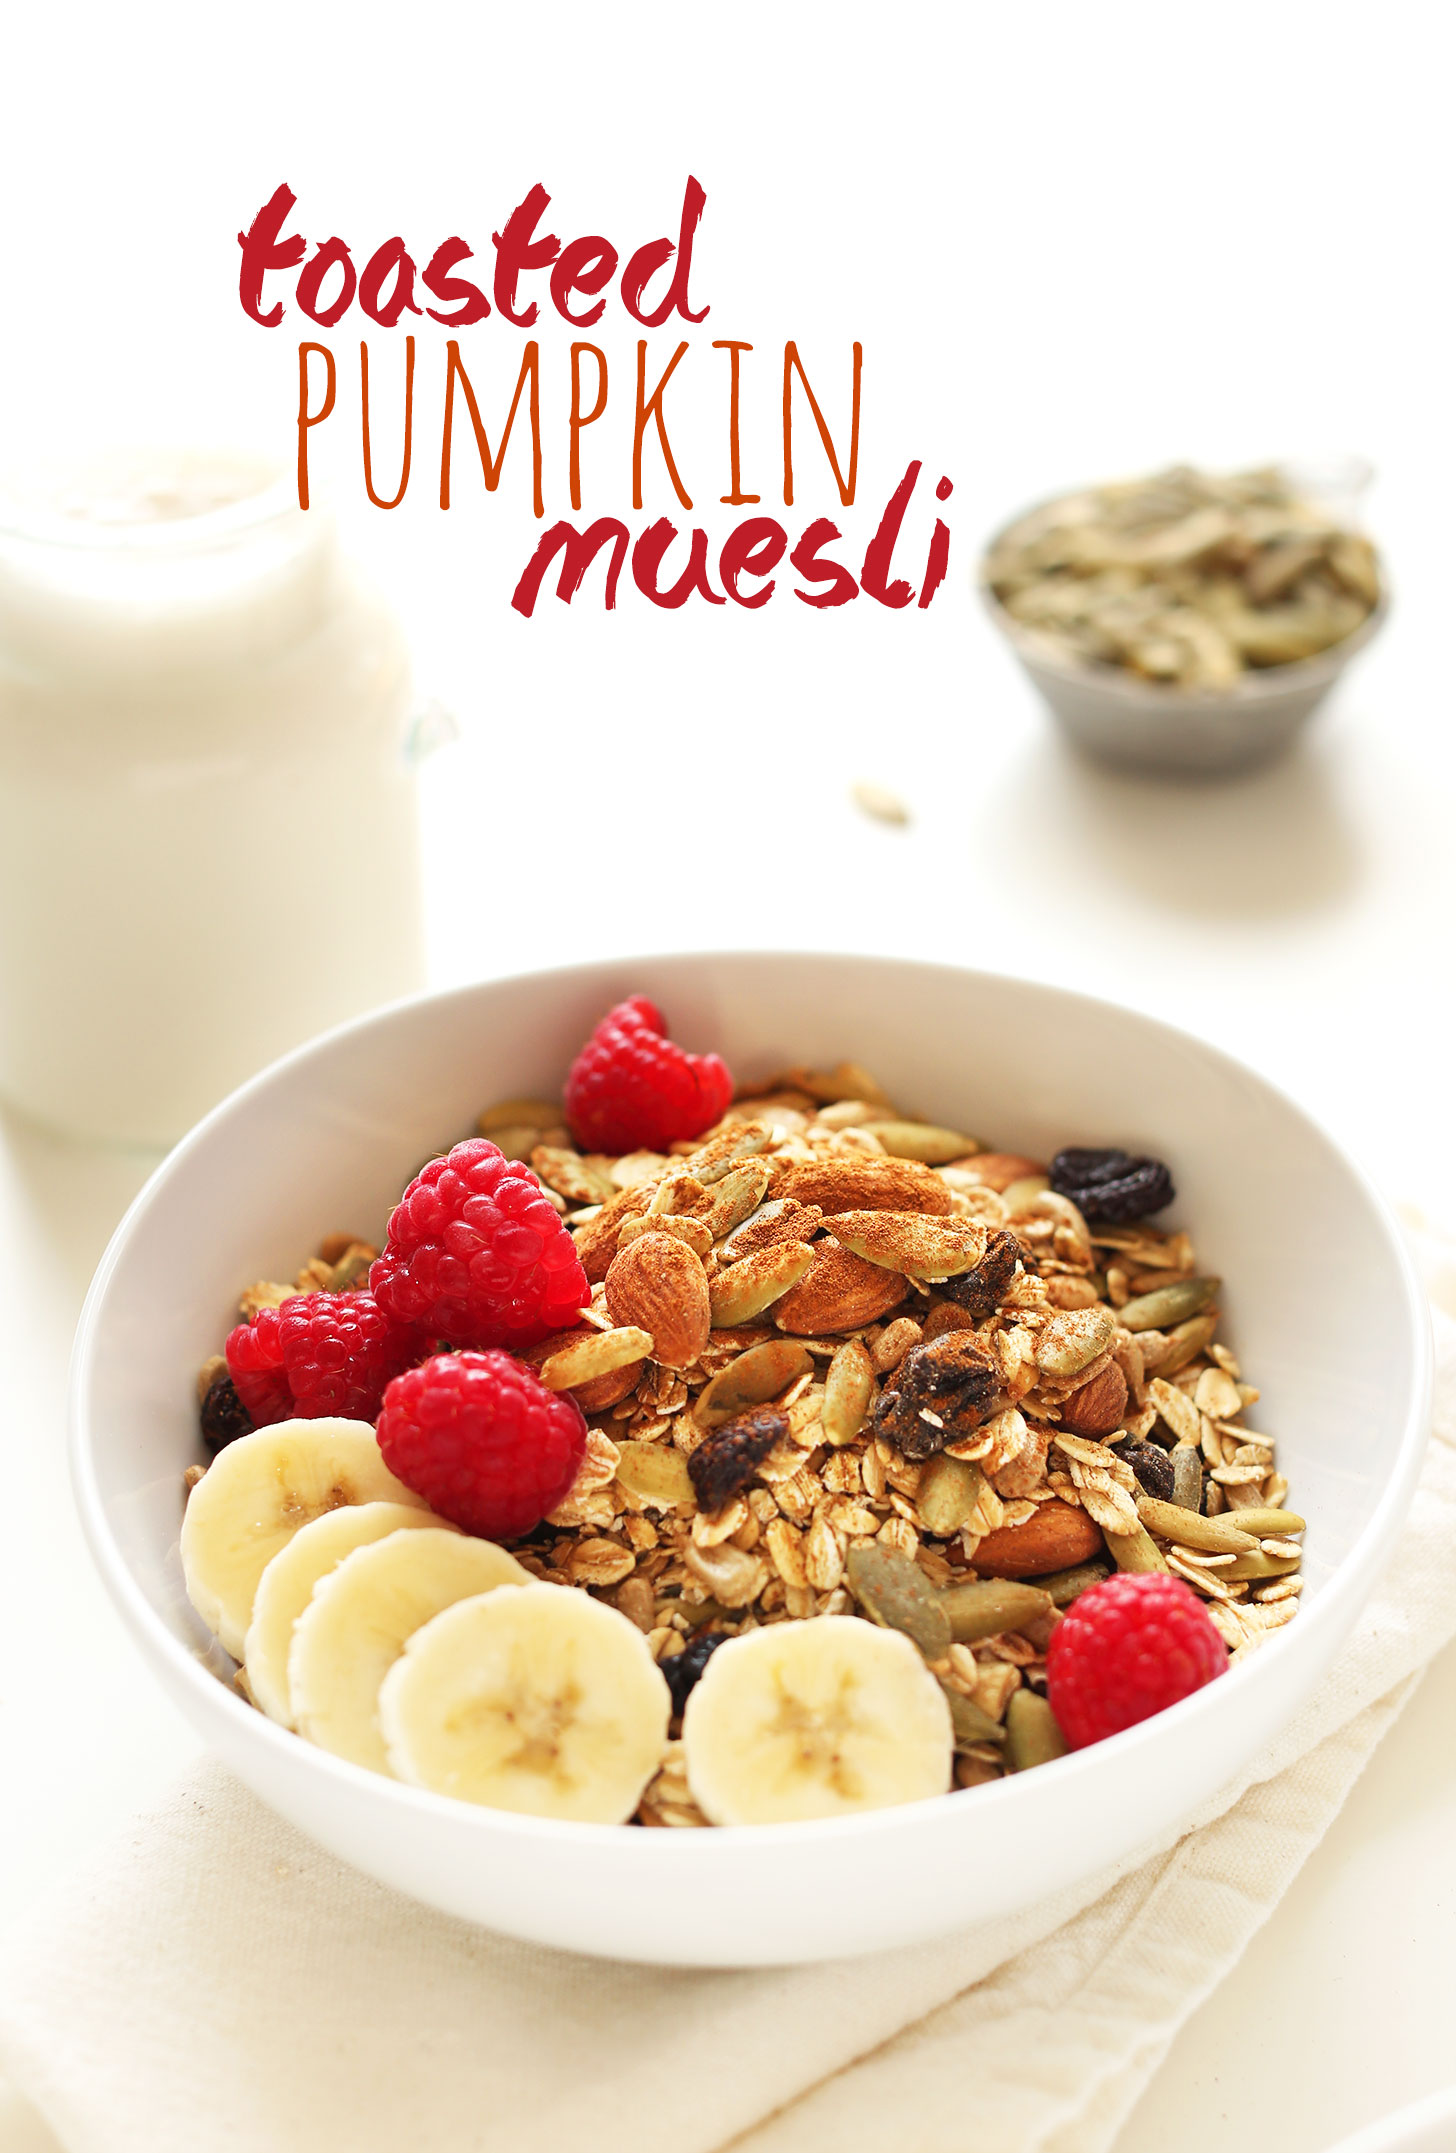 Bowl of Toasted Pumpkin Muesli for a healthy vegan snack